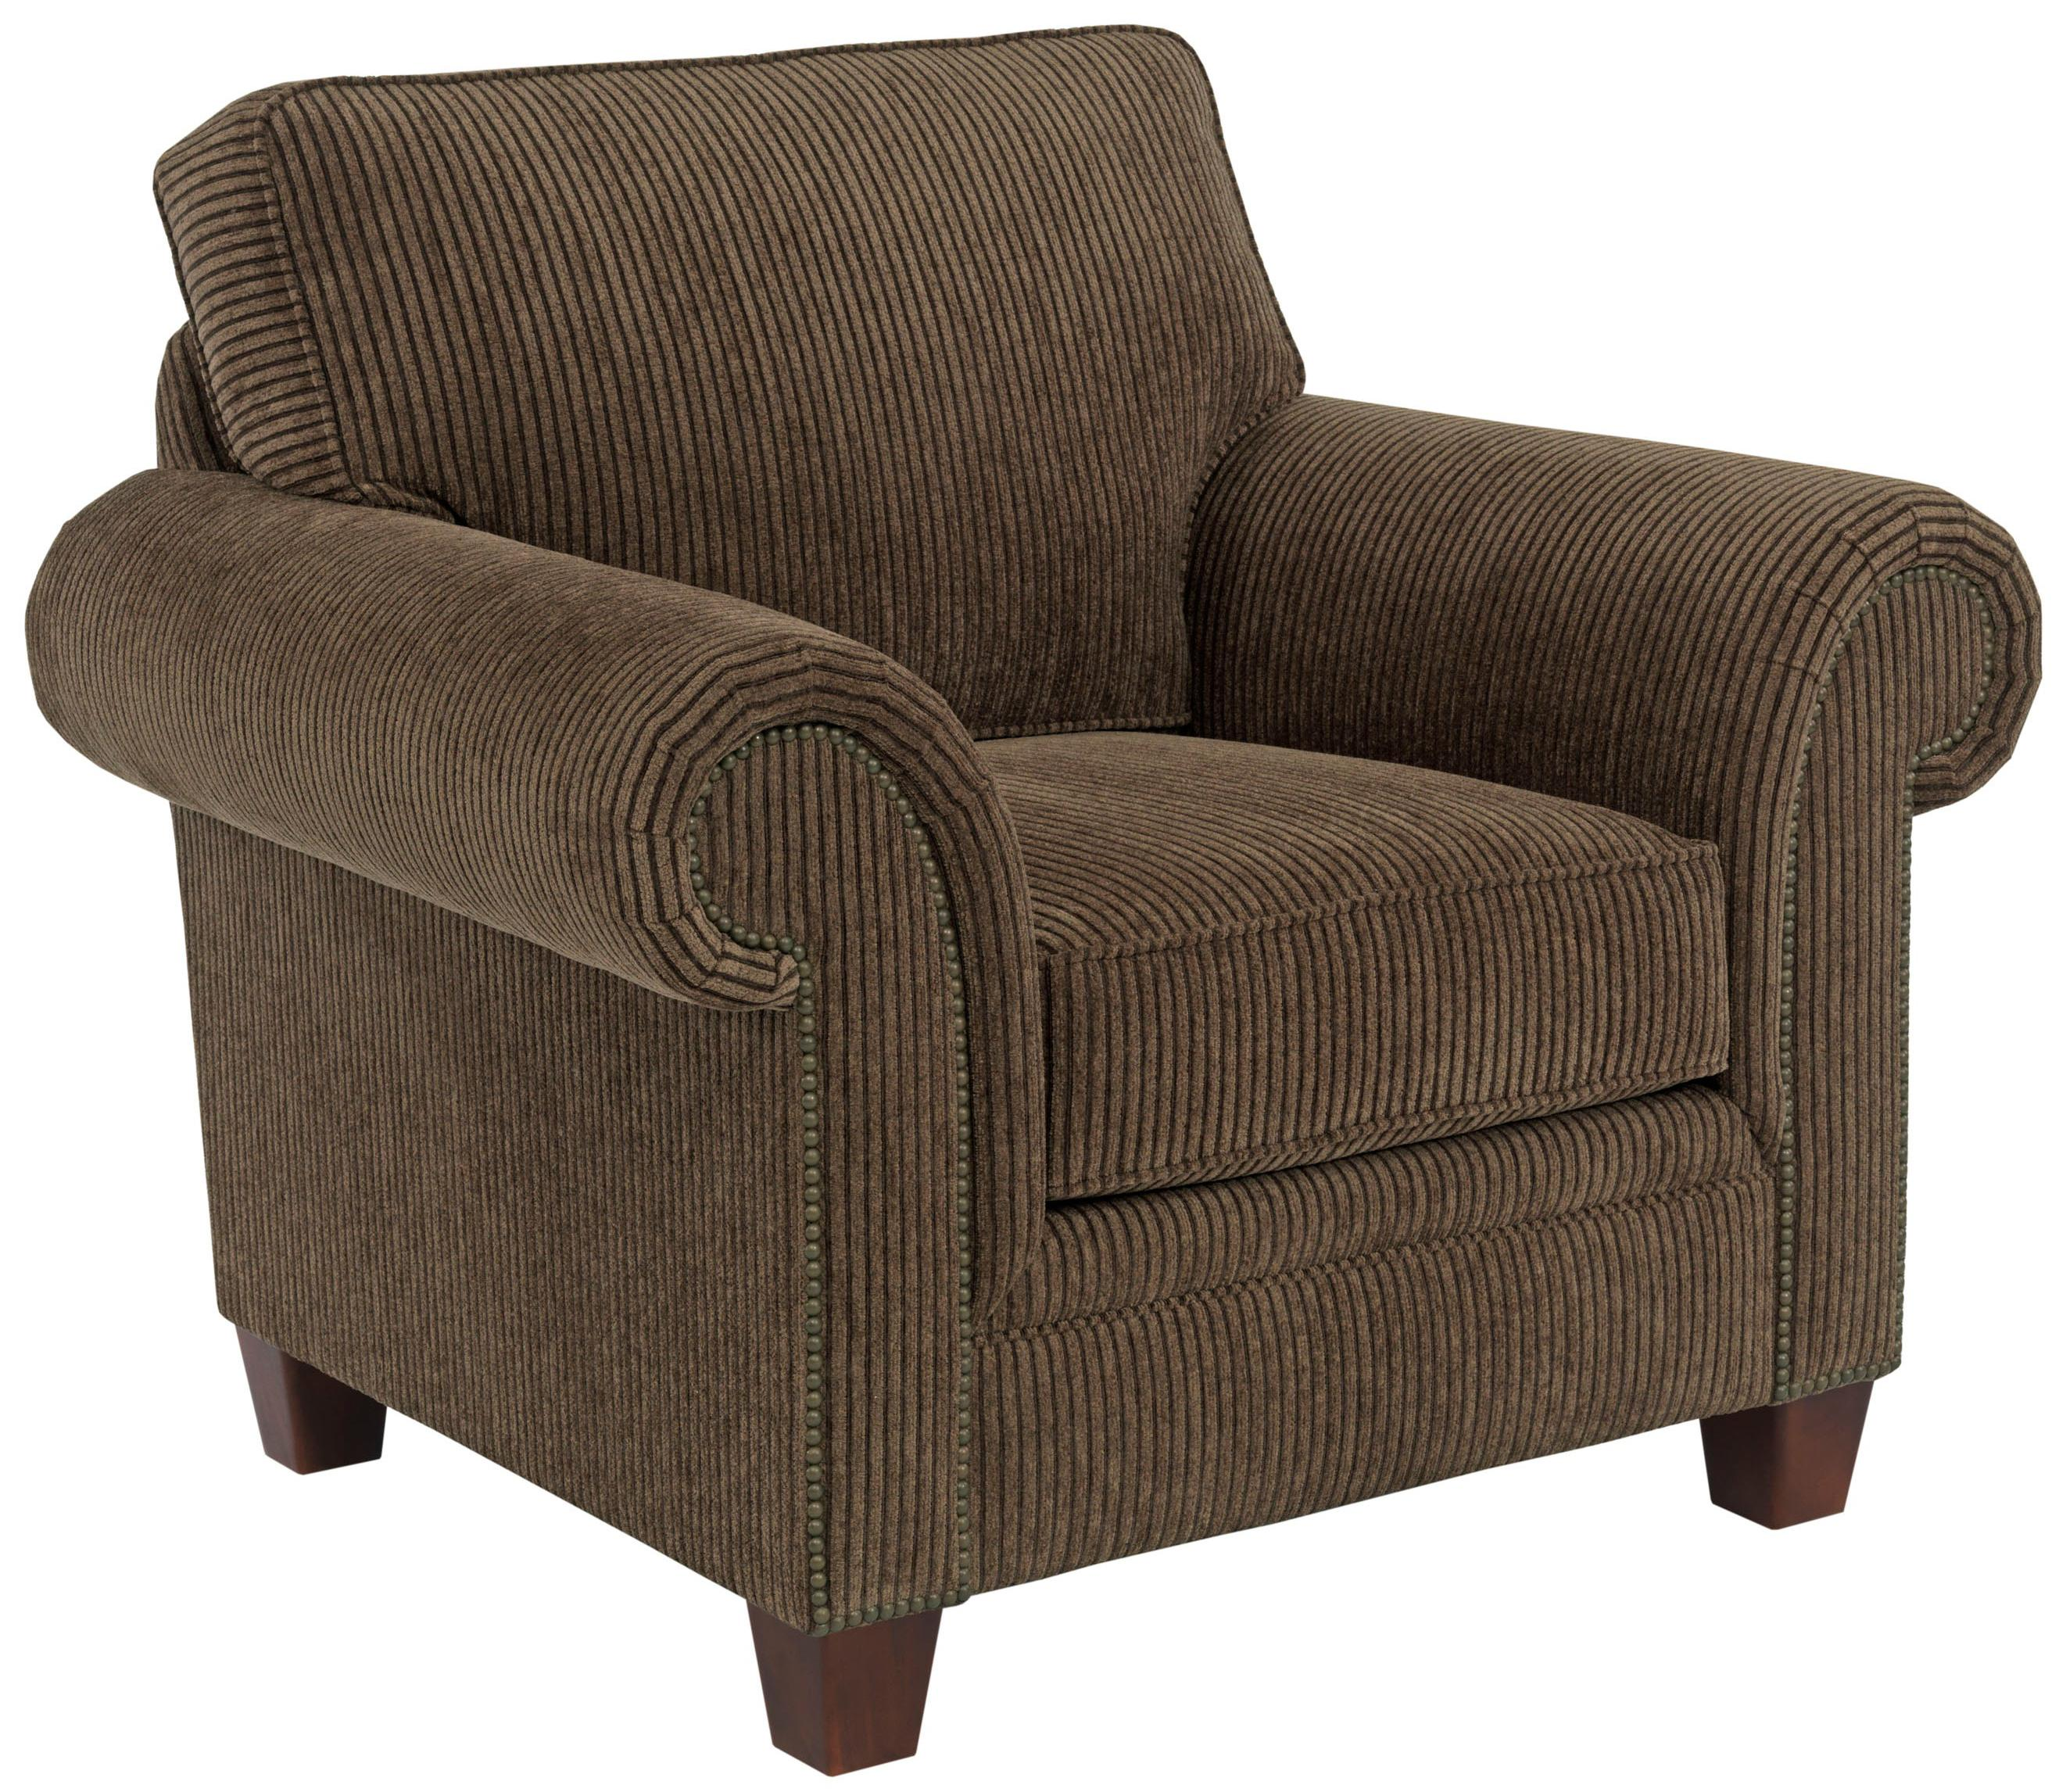 Peachy Broyhill Furniture Travis Transitional Upholstered Arm Chair Evergreenethics Interior Chair Design Evergreenethicsorg